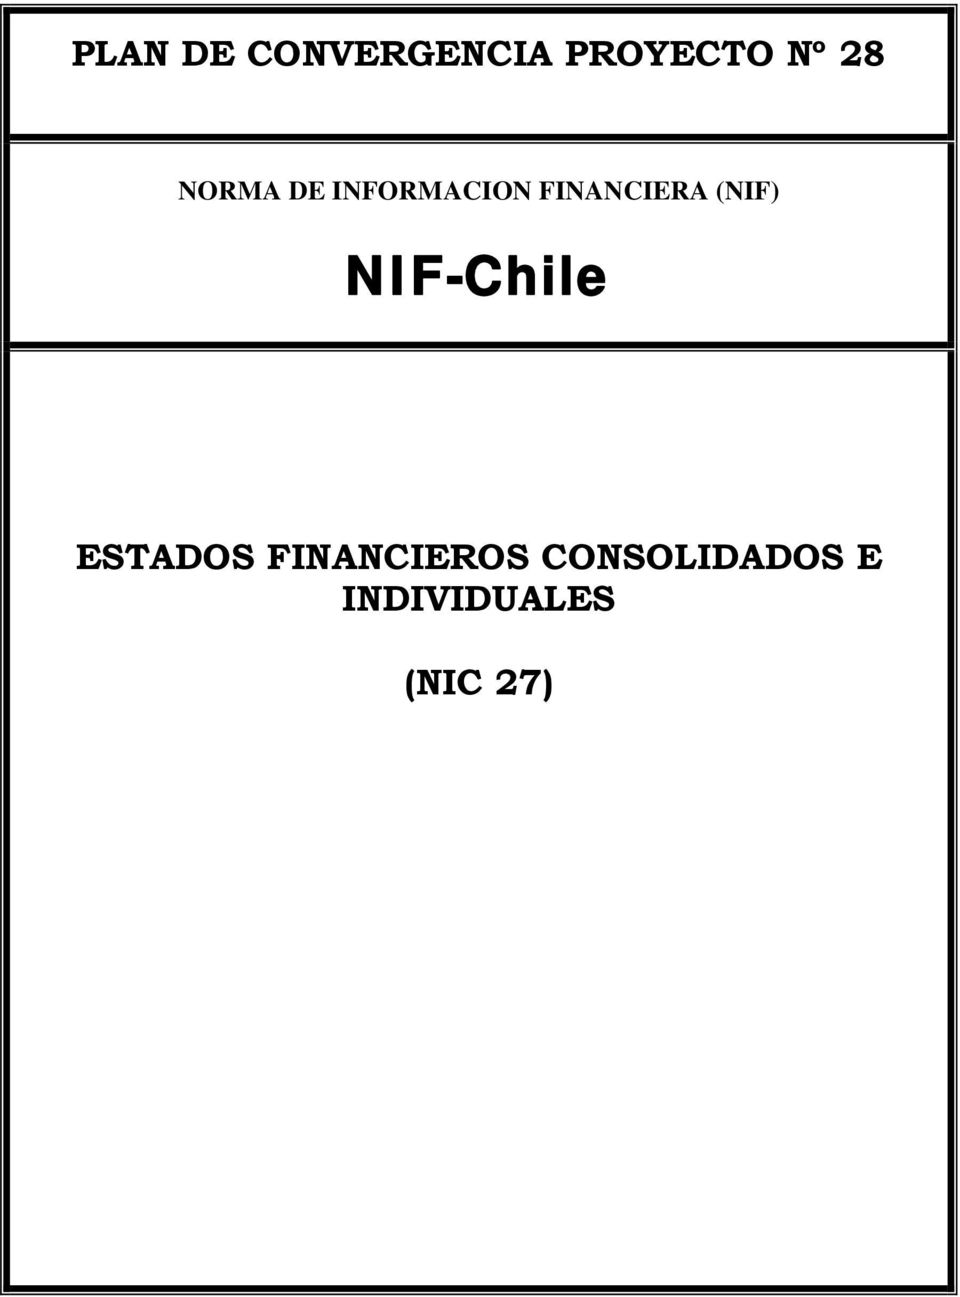 (NIF) NIF-Chile ESTADOS